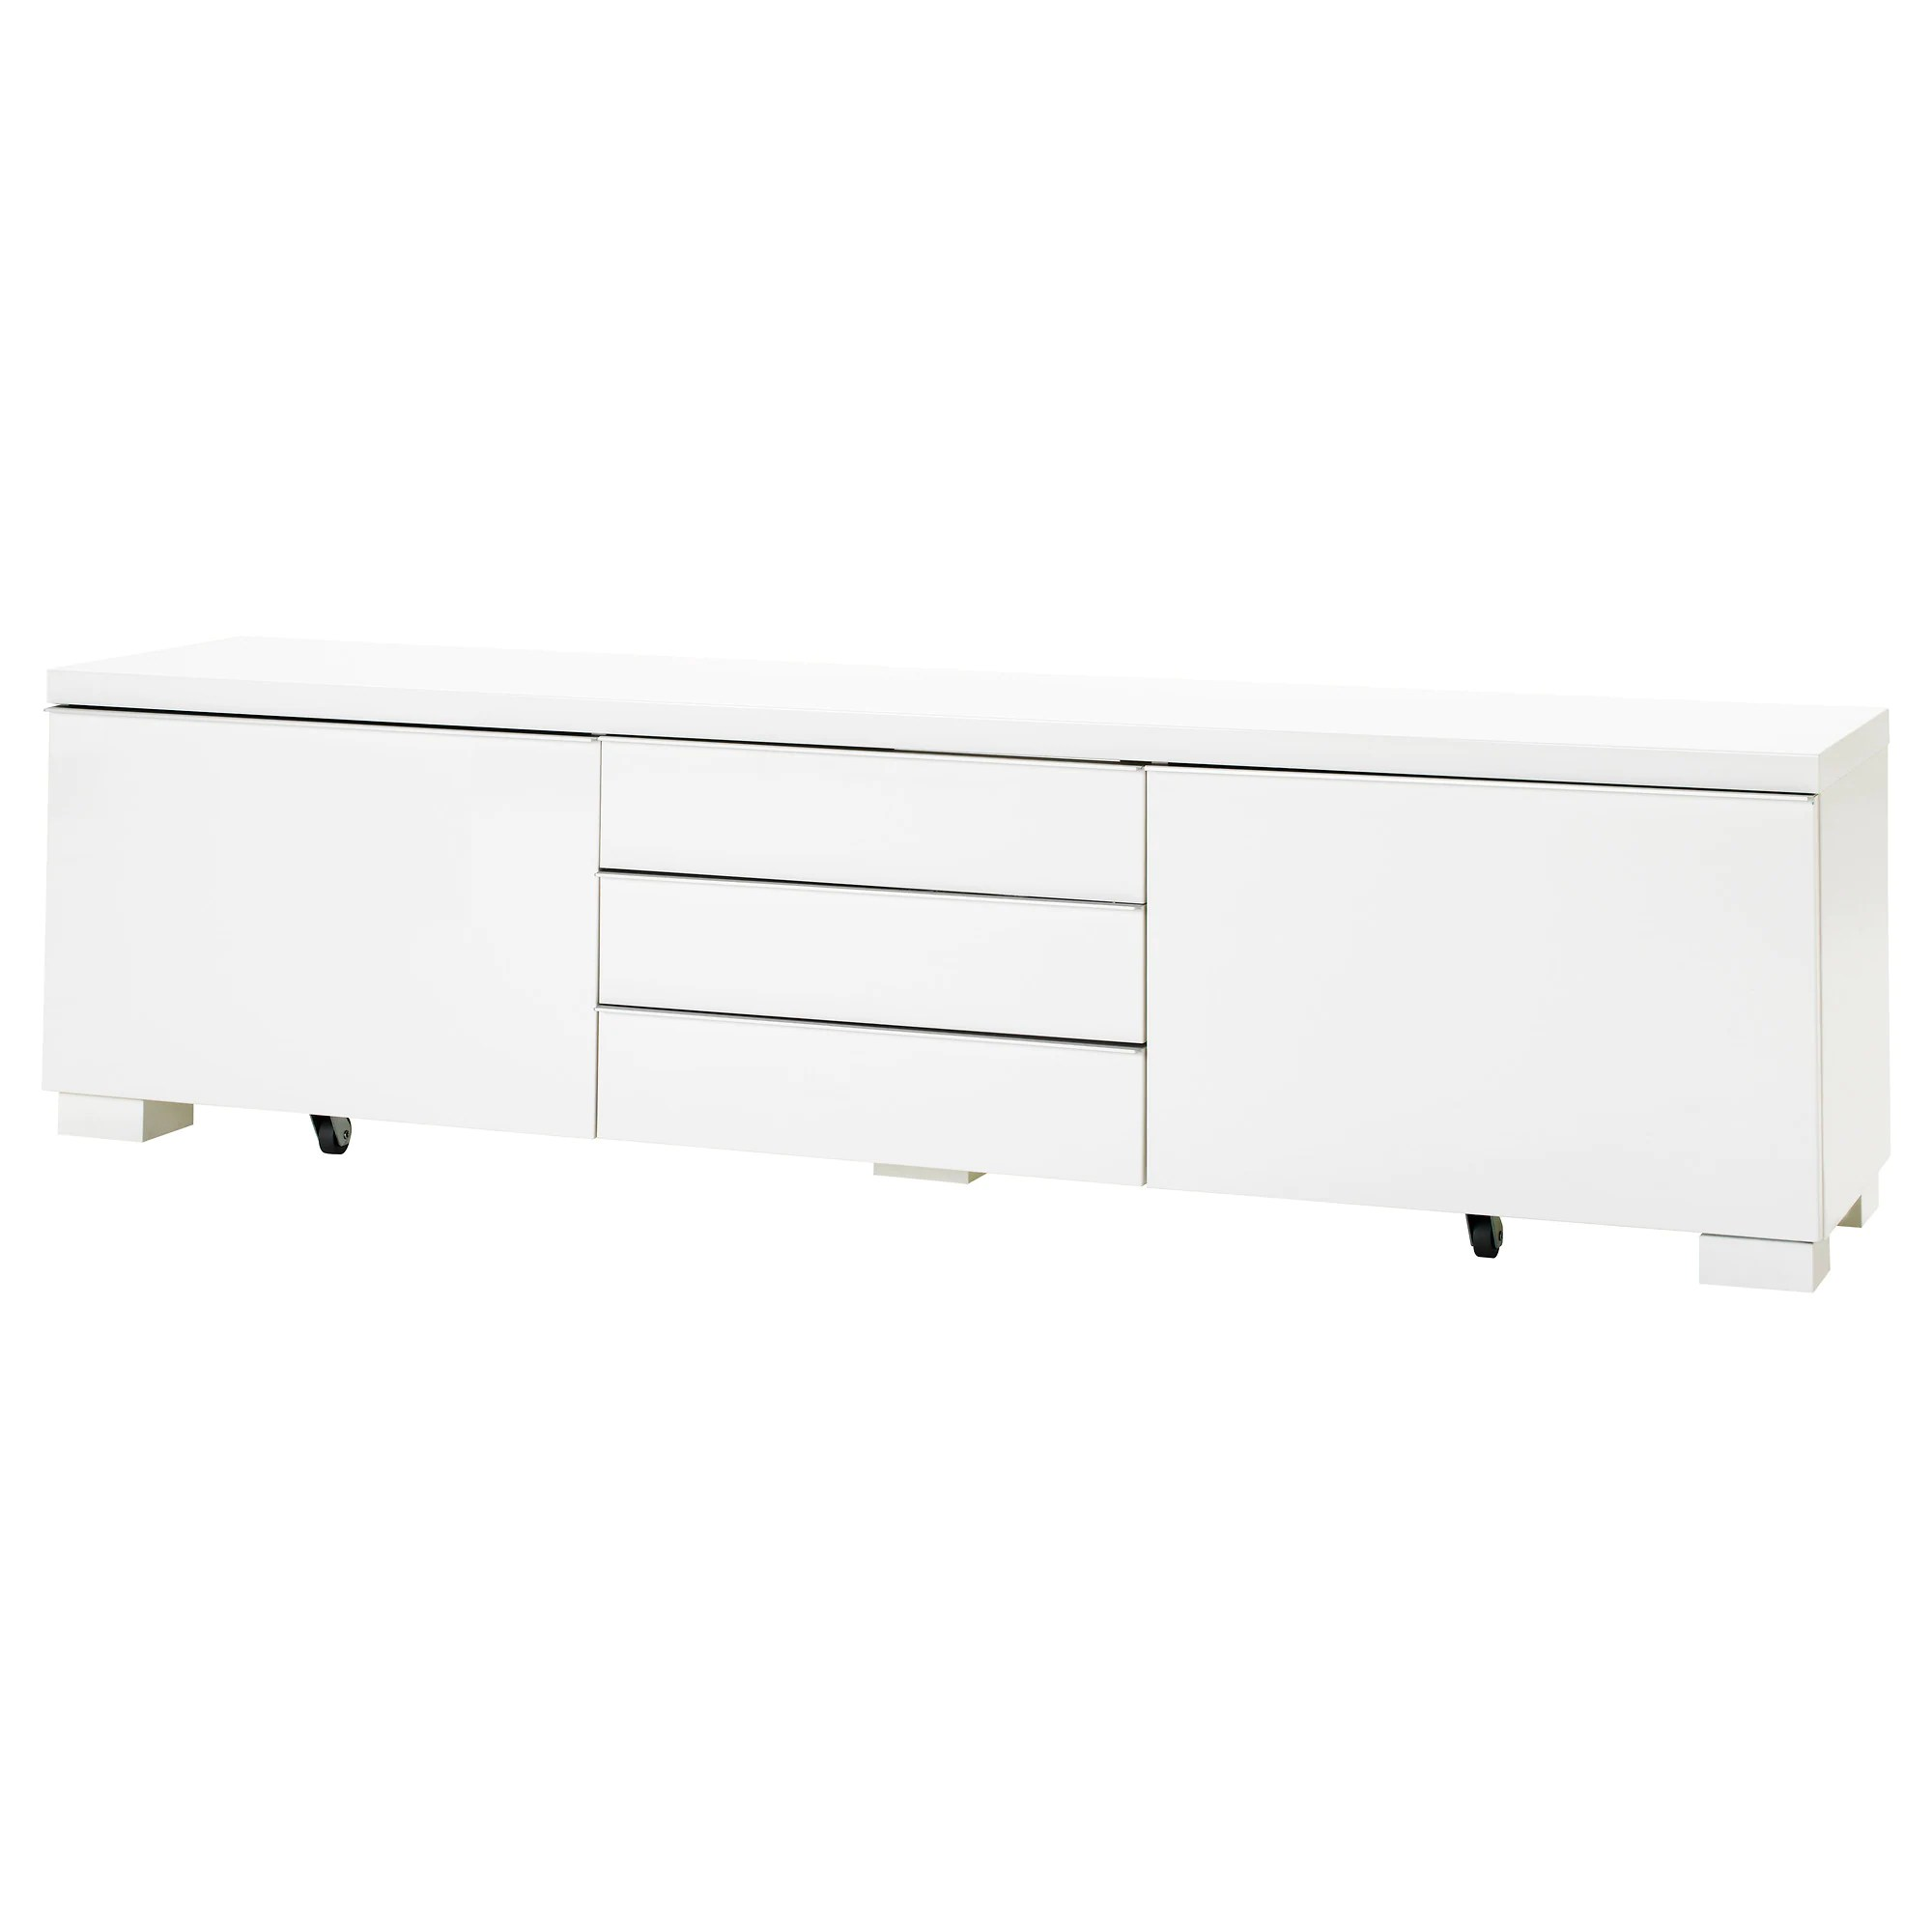 Exclusive Inspiration Mobile Porta Tv Ikea 78 Org Con